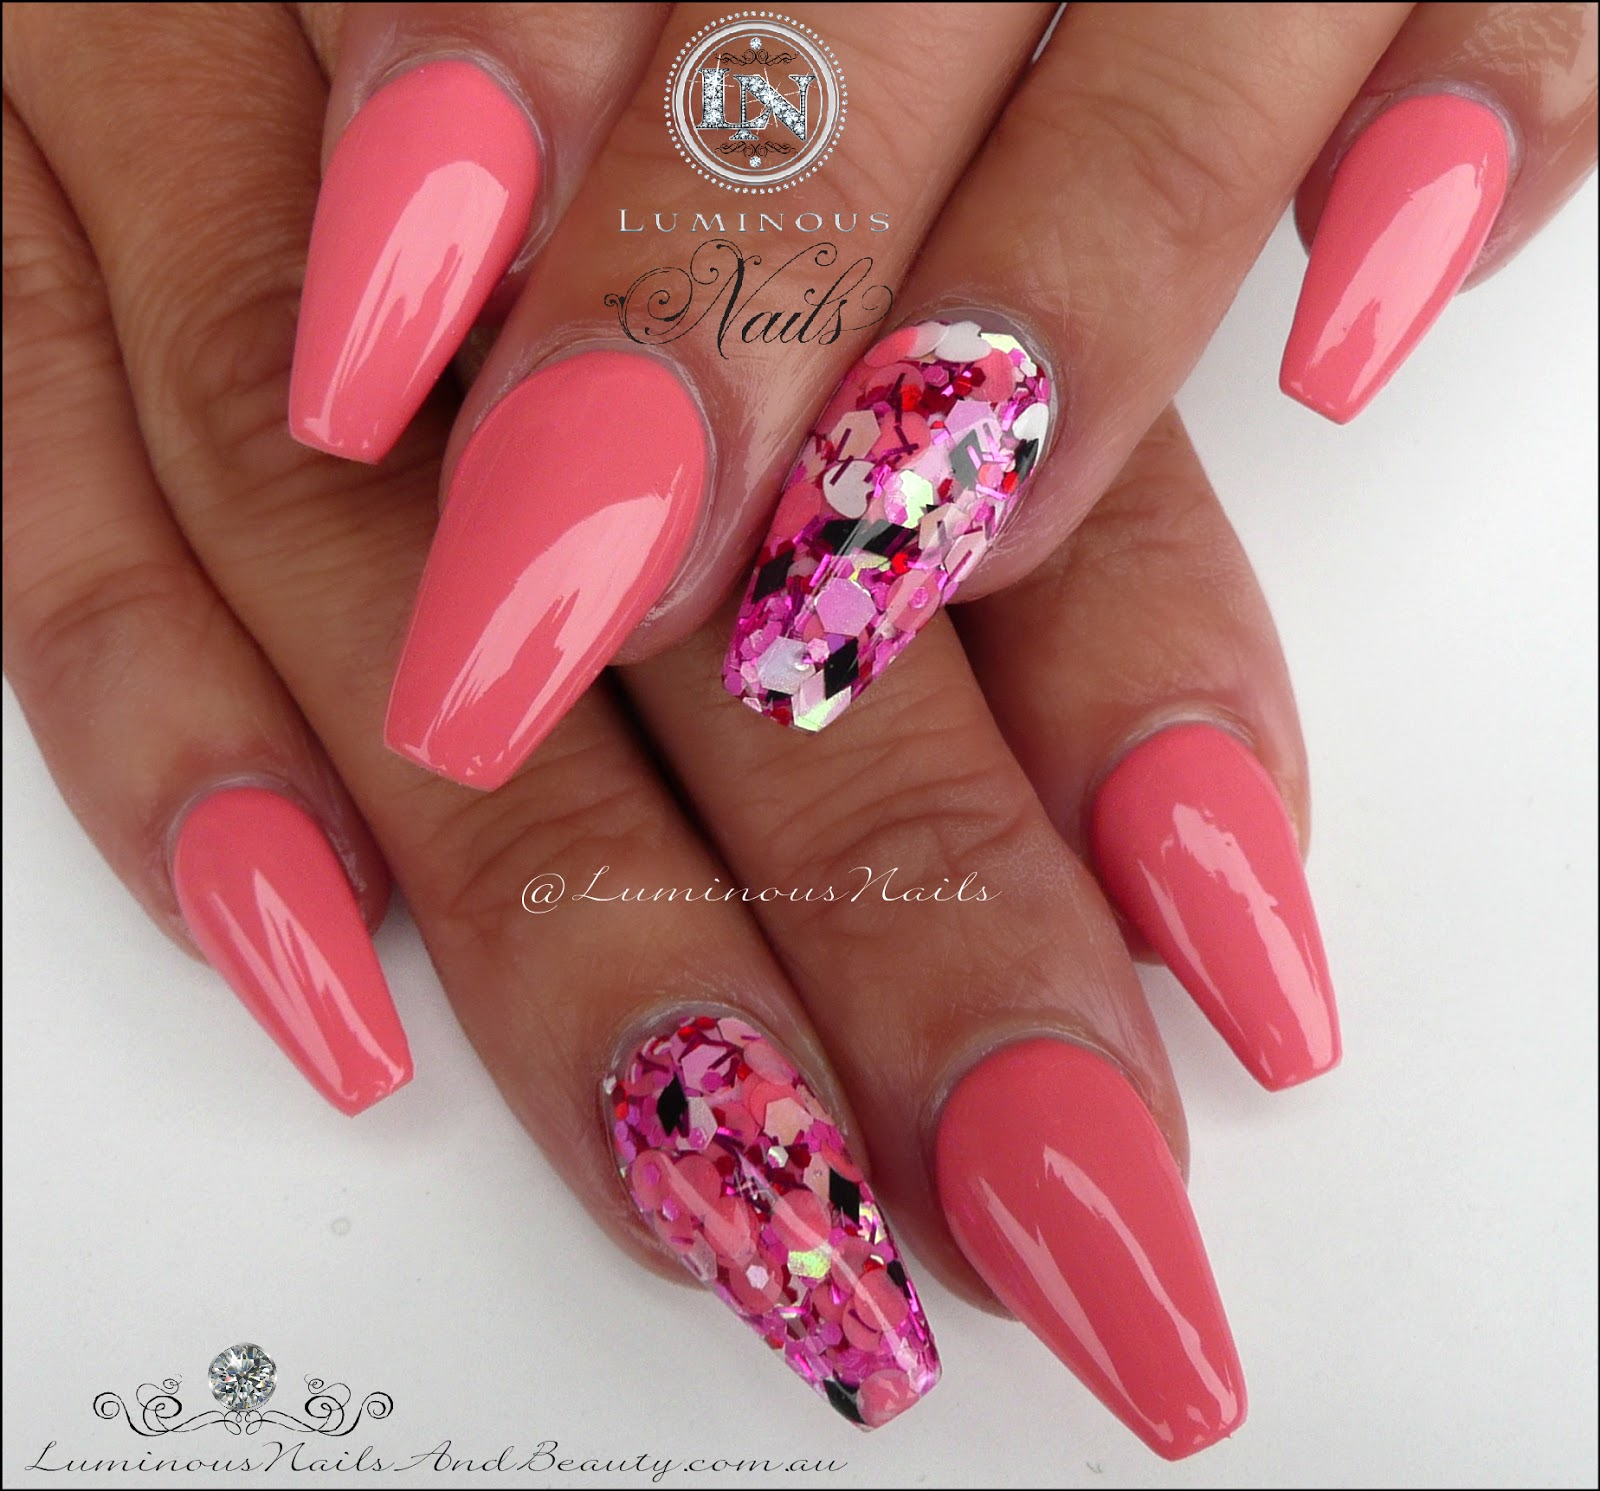 C Pink Acrylic Gel Nails